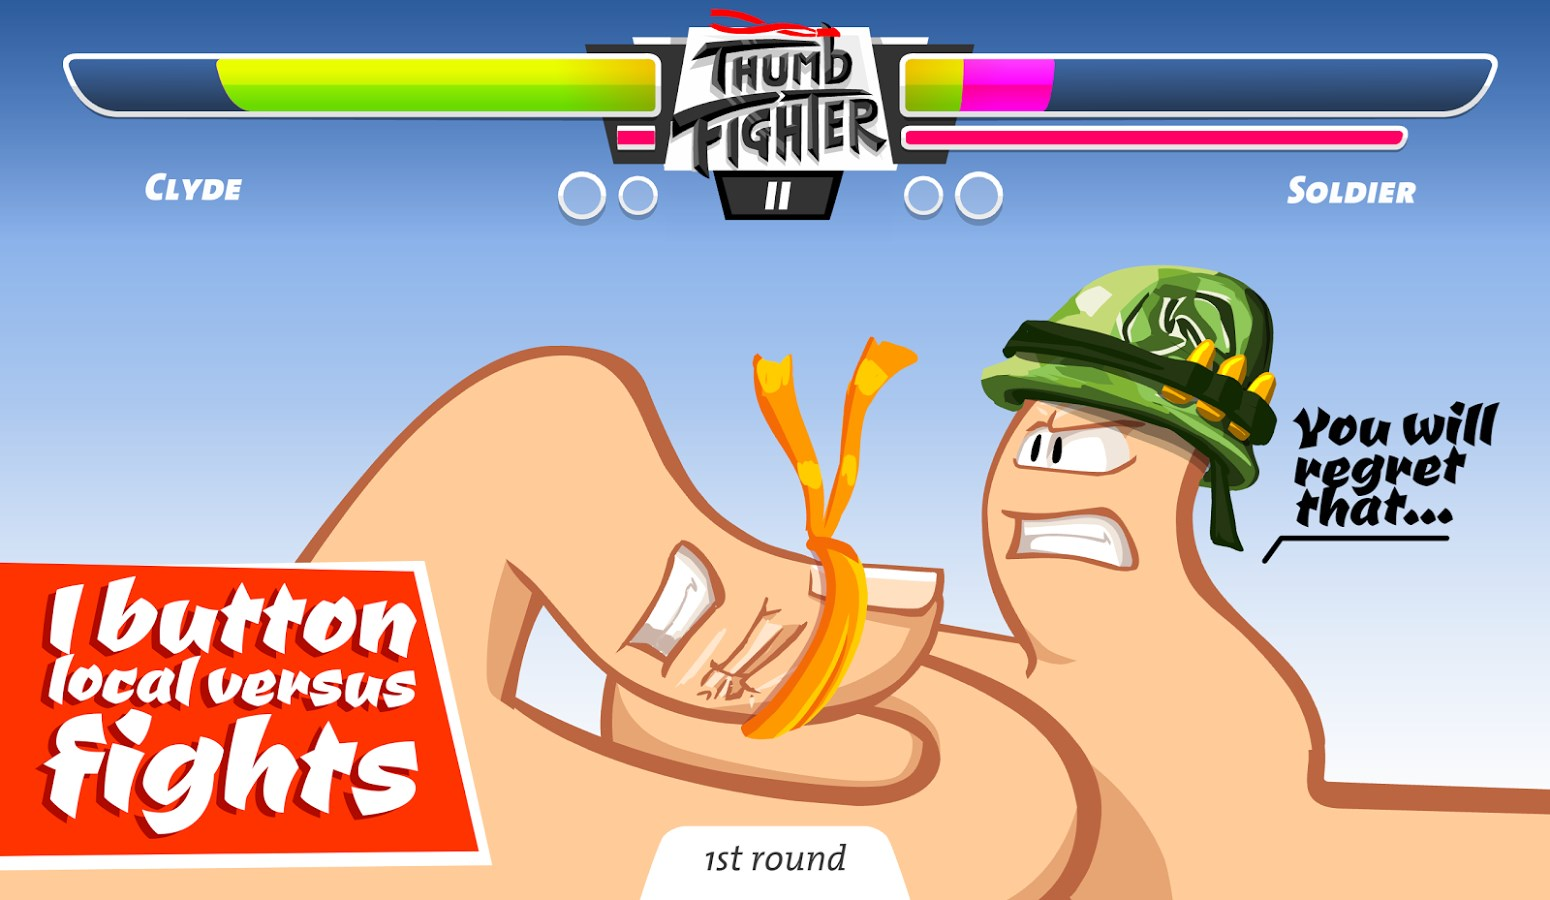 Thumb Fighter - Imagem 1 do software